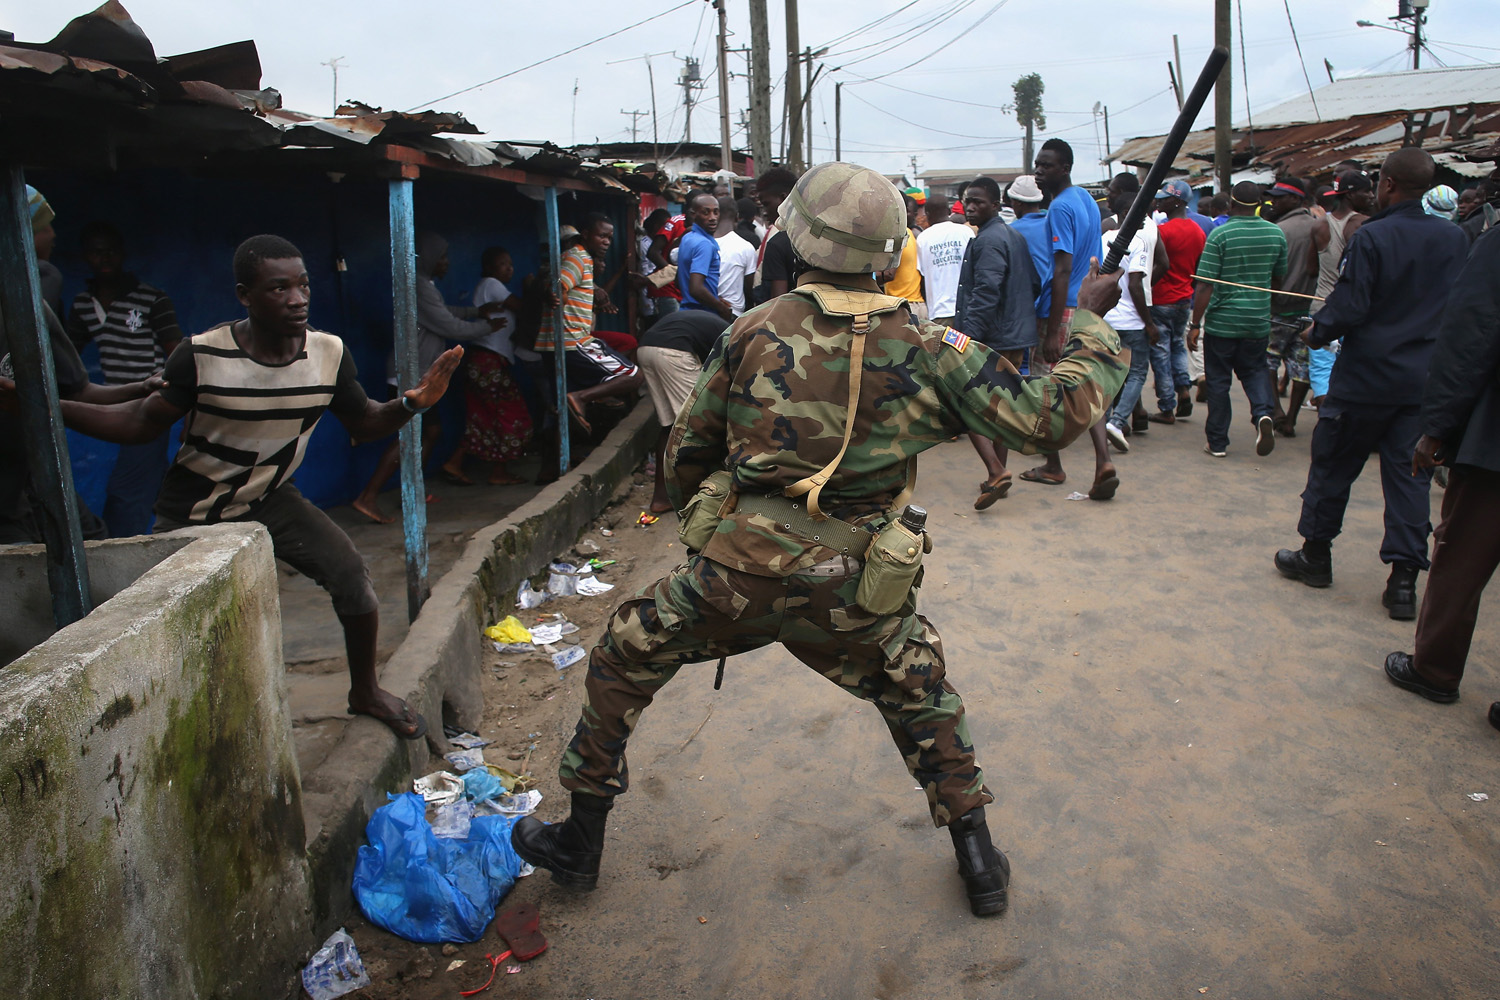 Aug. 20, 2014. A Liberian Army soldier, part of the Ebola Task Force, beats a local resident while enforcing a quarantine on the West Point slum in Monrovia, Liberia. The government ordered the quarantine of West Point, a congested seaside slum of 75,000, on Wednesday, in an effort to stop the spread of the virus in the capital city.